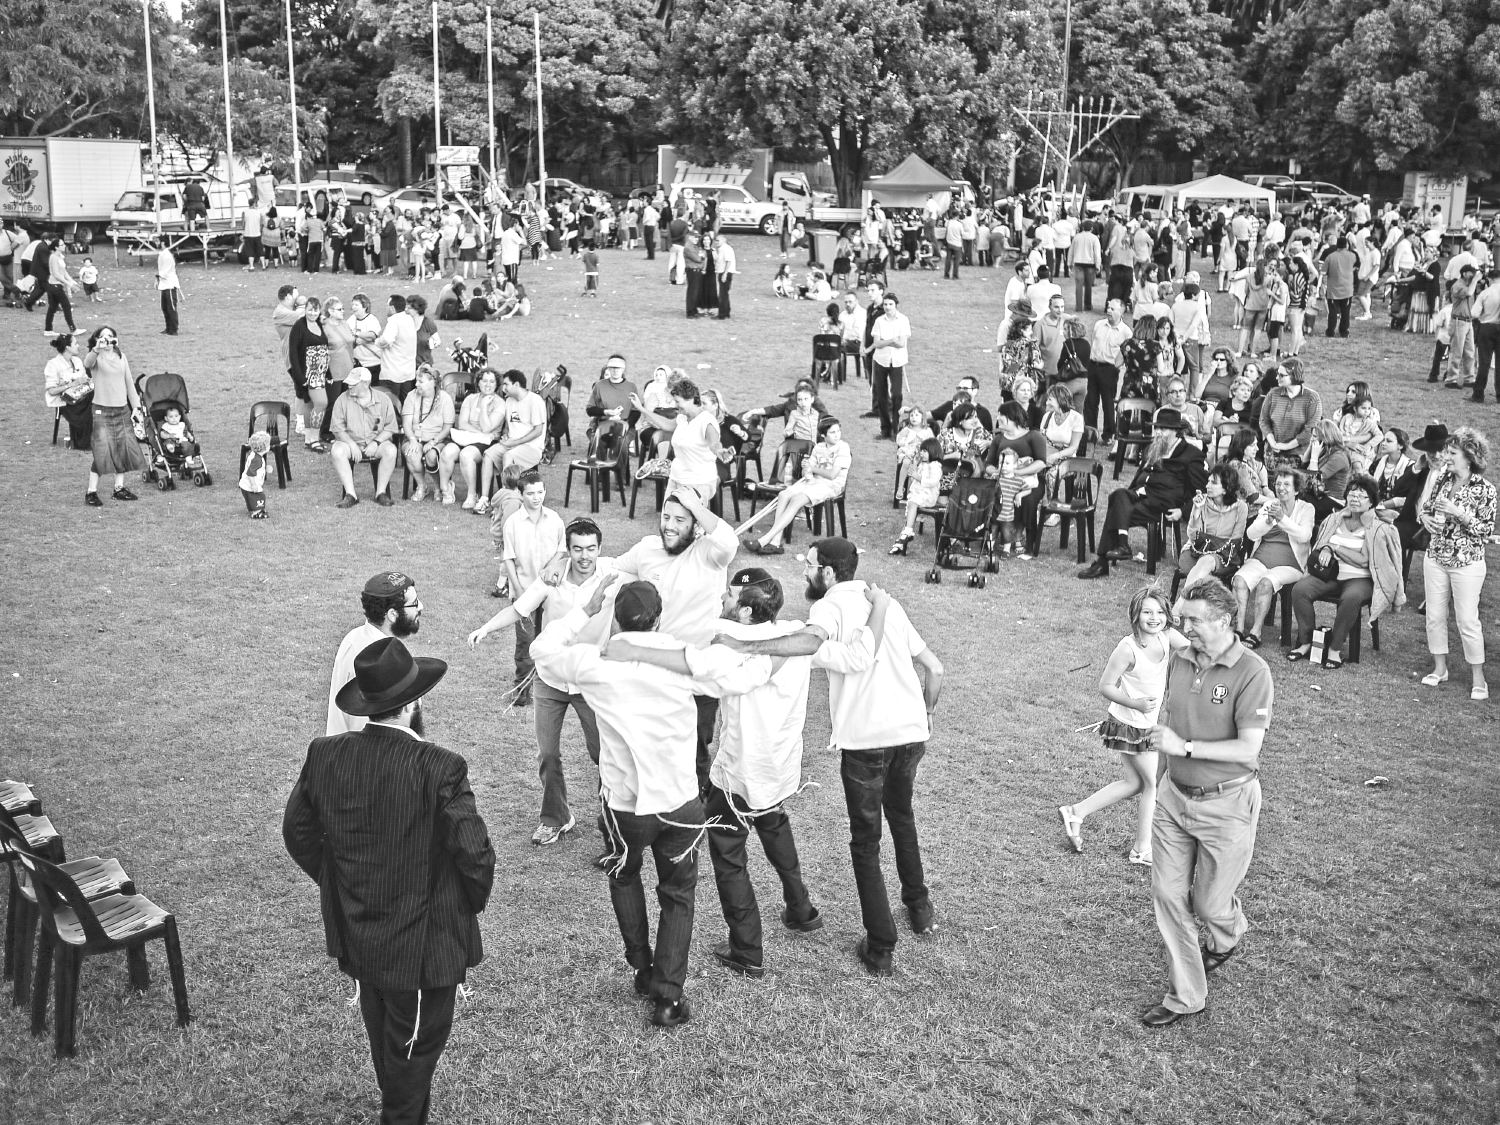 Men and women dance in a park at a community event with a crowd of people watching on.